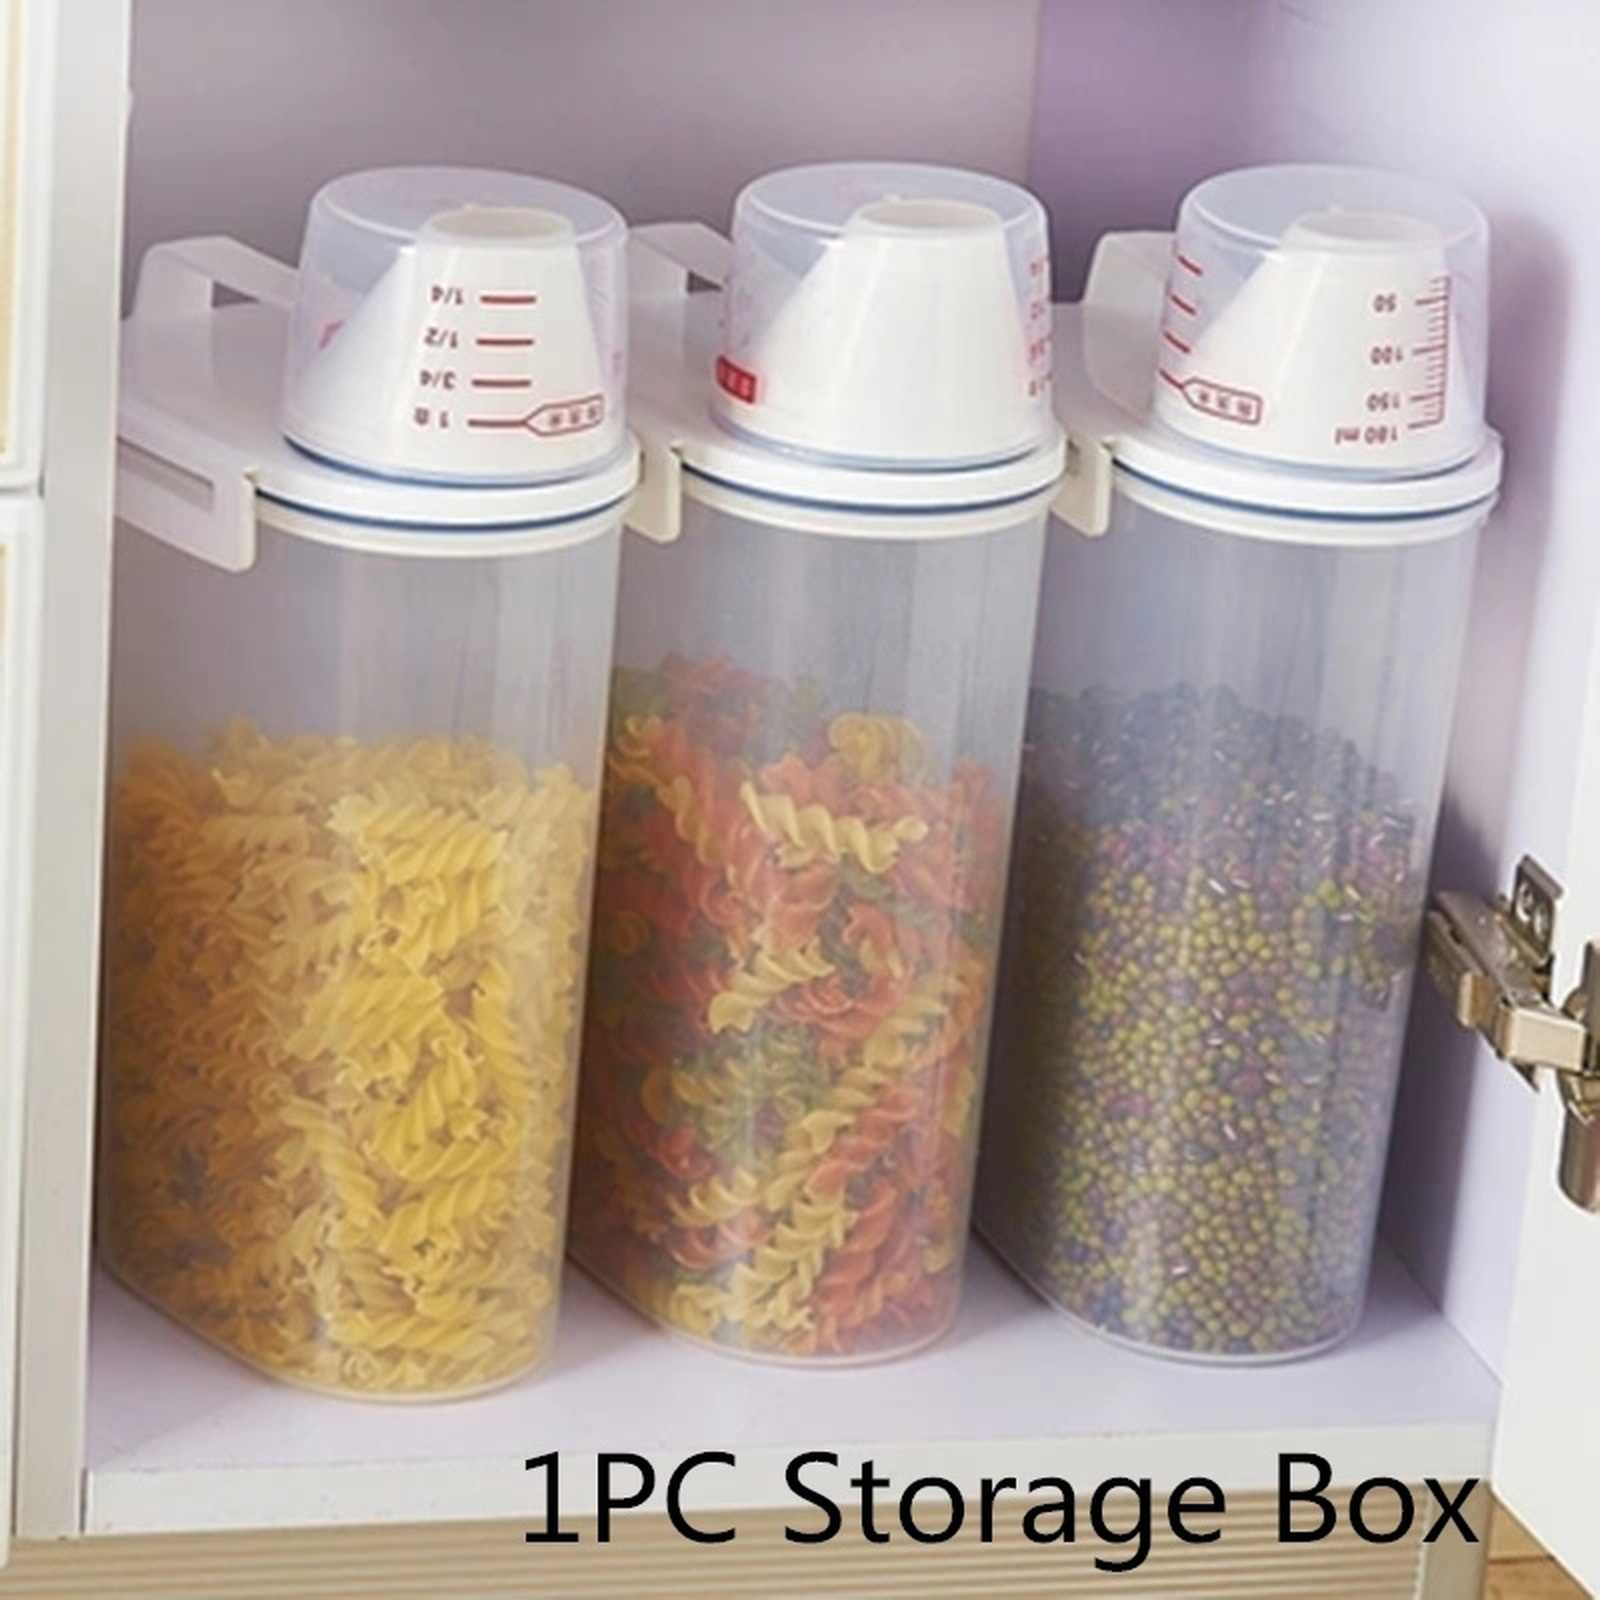 1PC 2L Plastic Sugar Coffee Pasta Cereal Dispenser Storage Box Locking Clear Food Jars Grain Rice Container Kitchen Pots 2kg